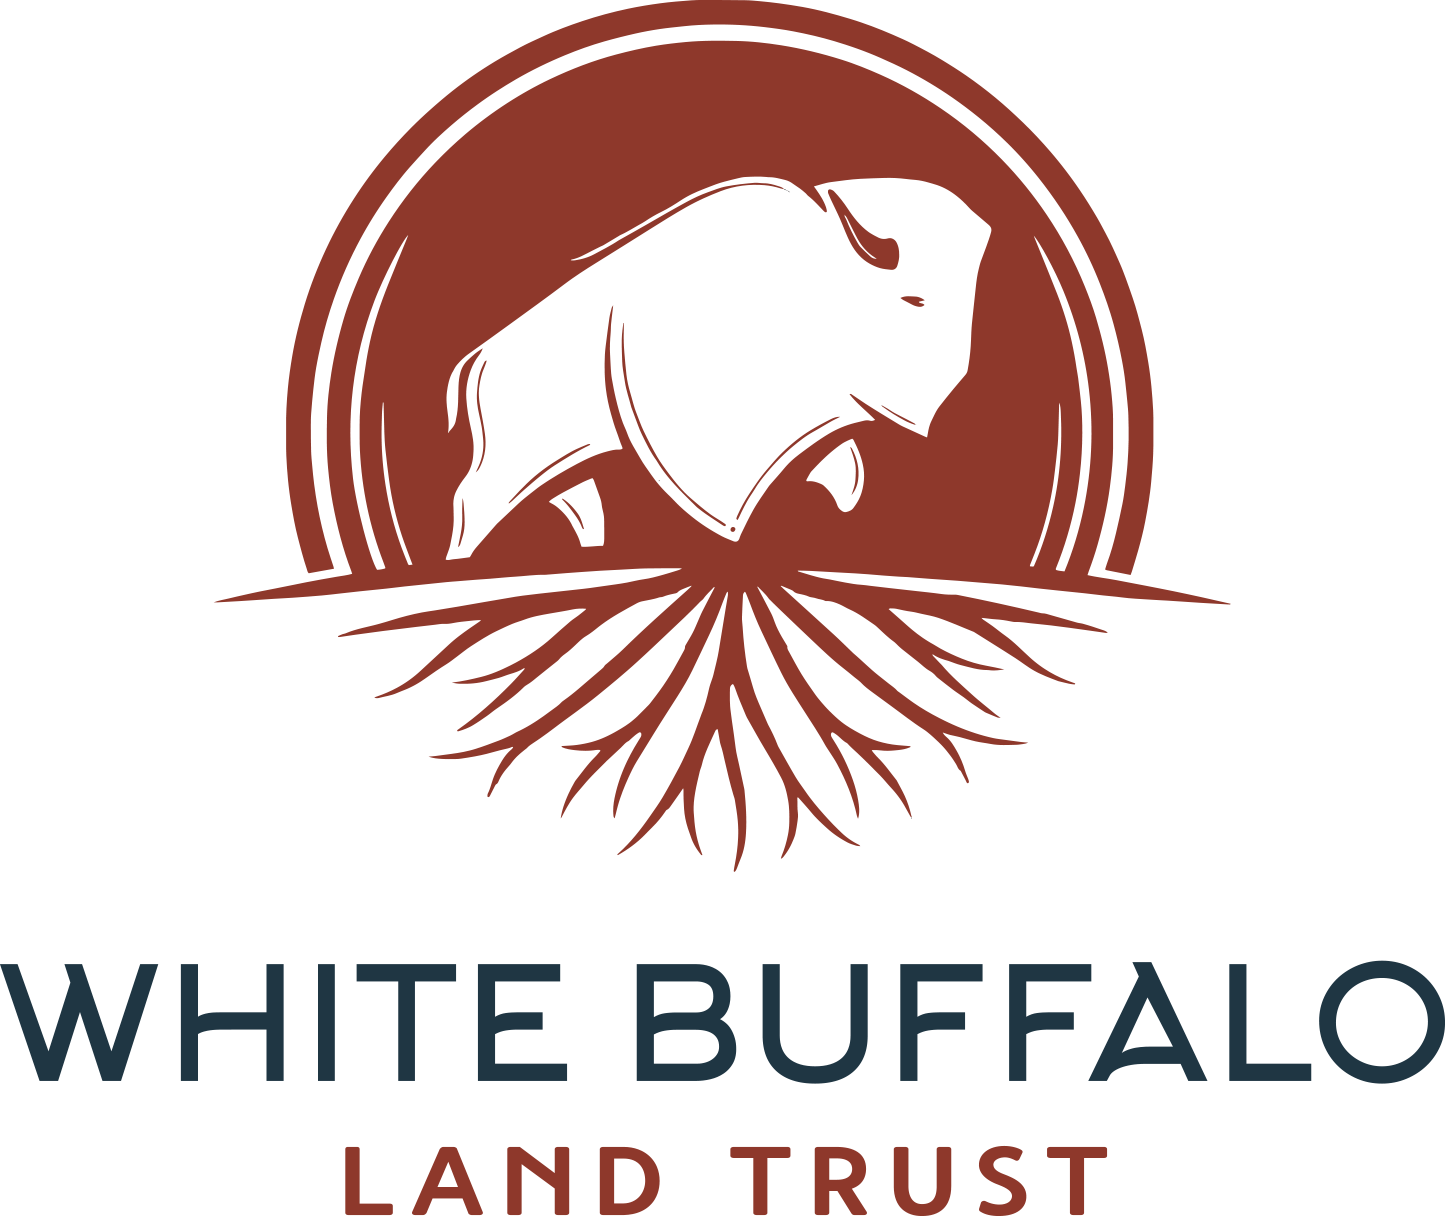 White Buffalo Land Trust